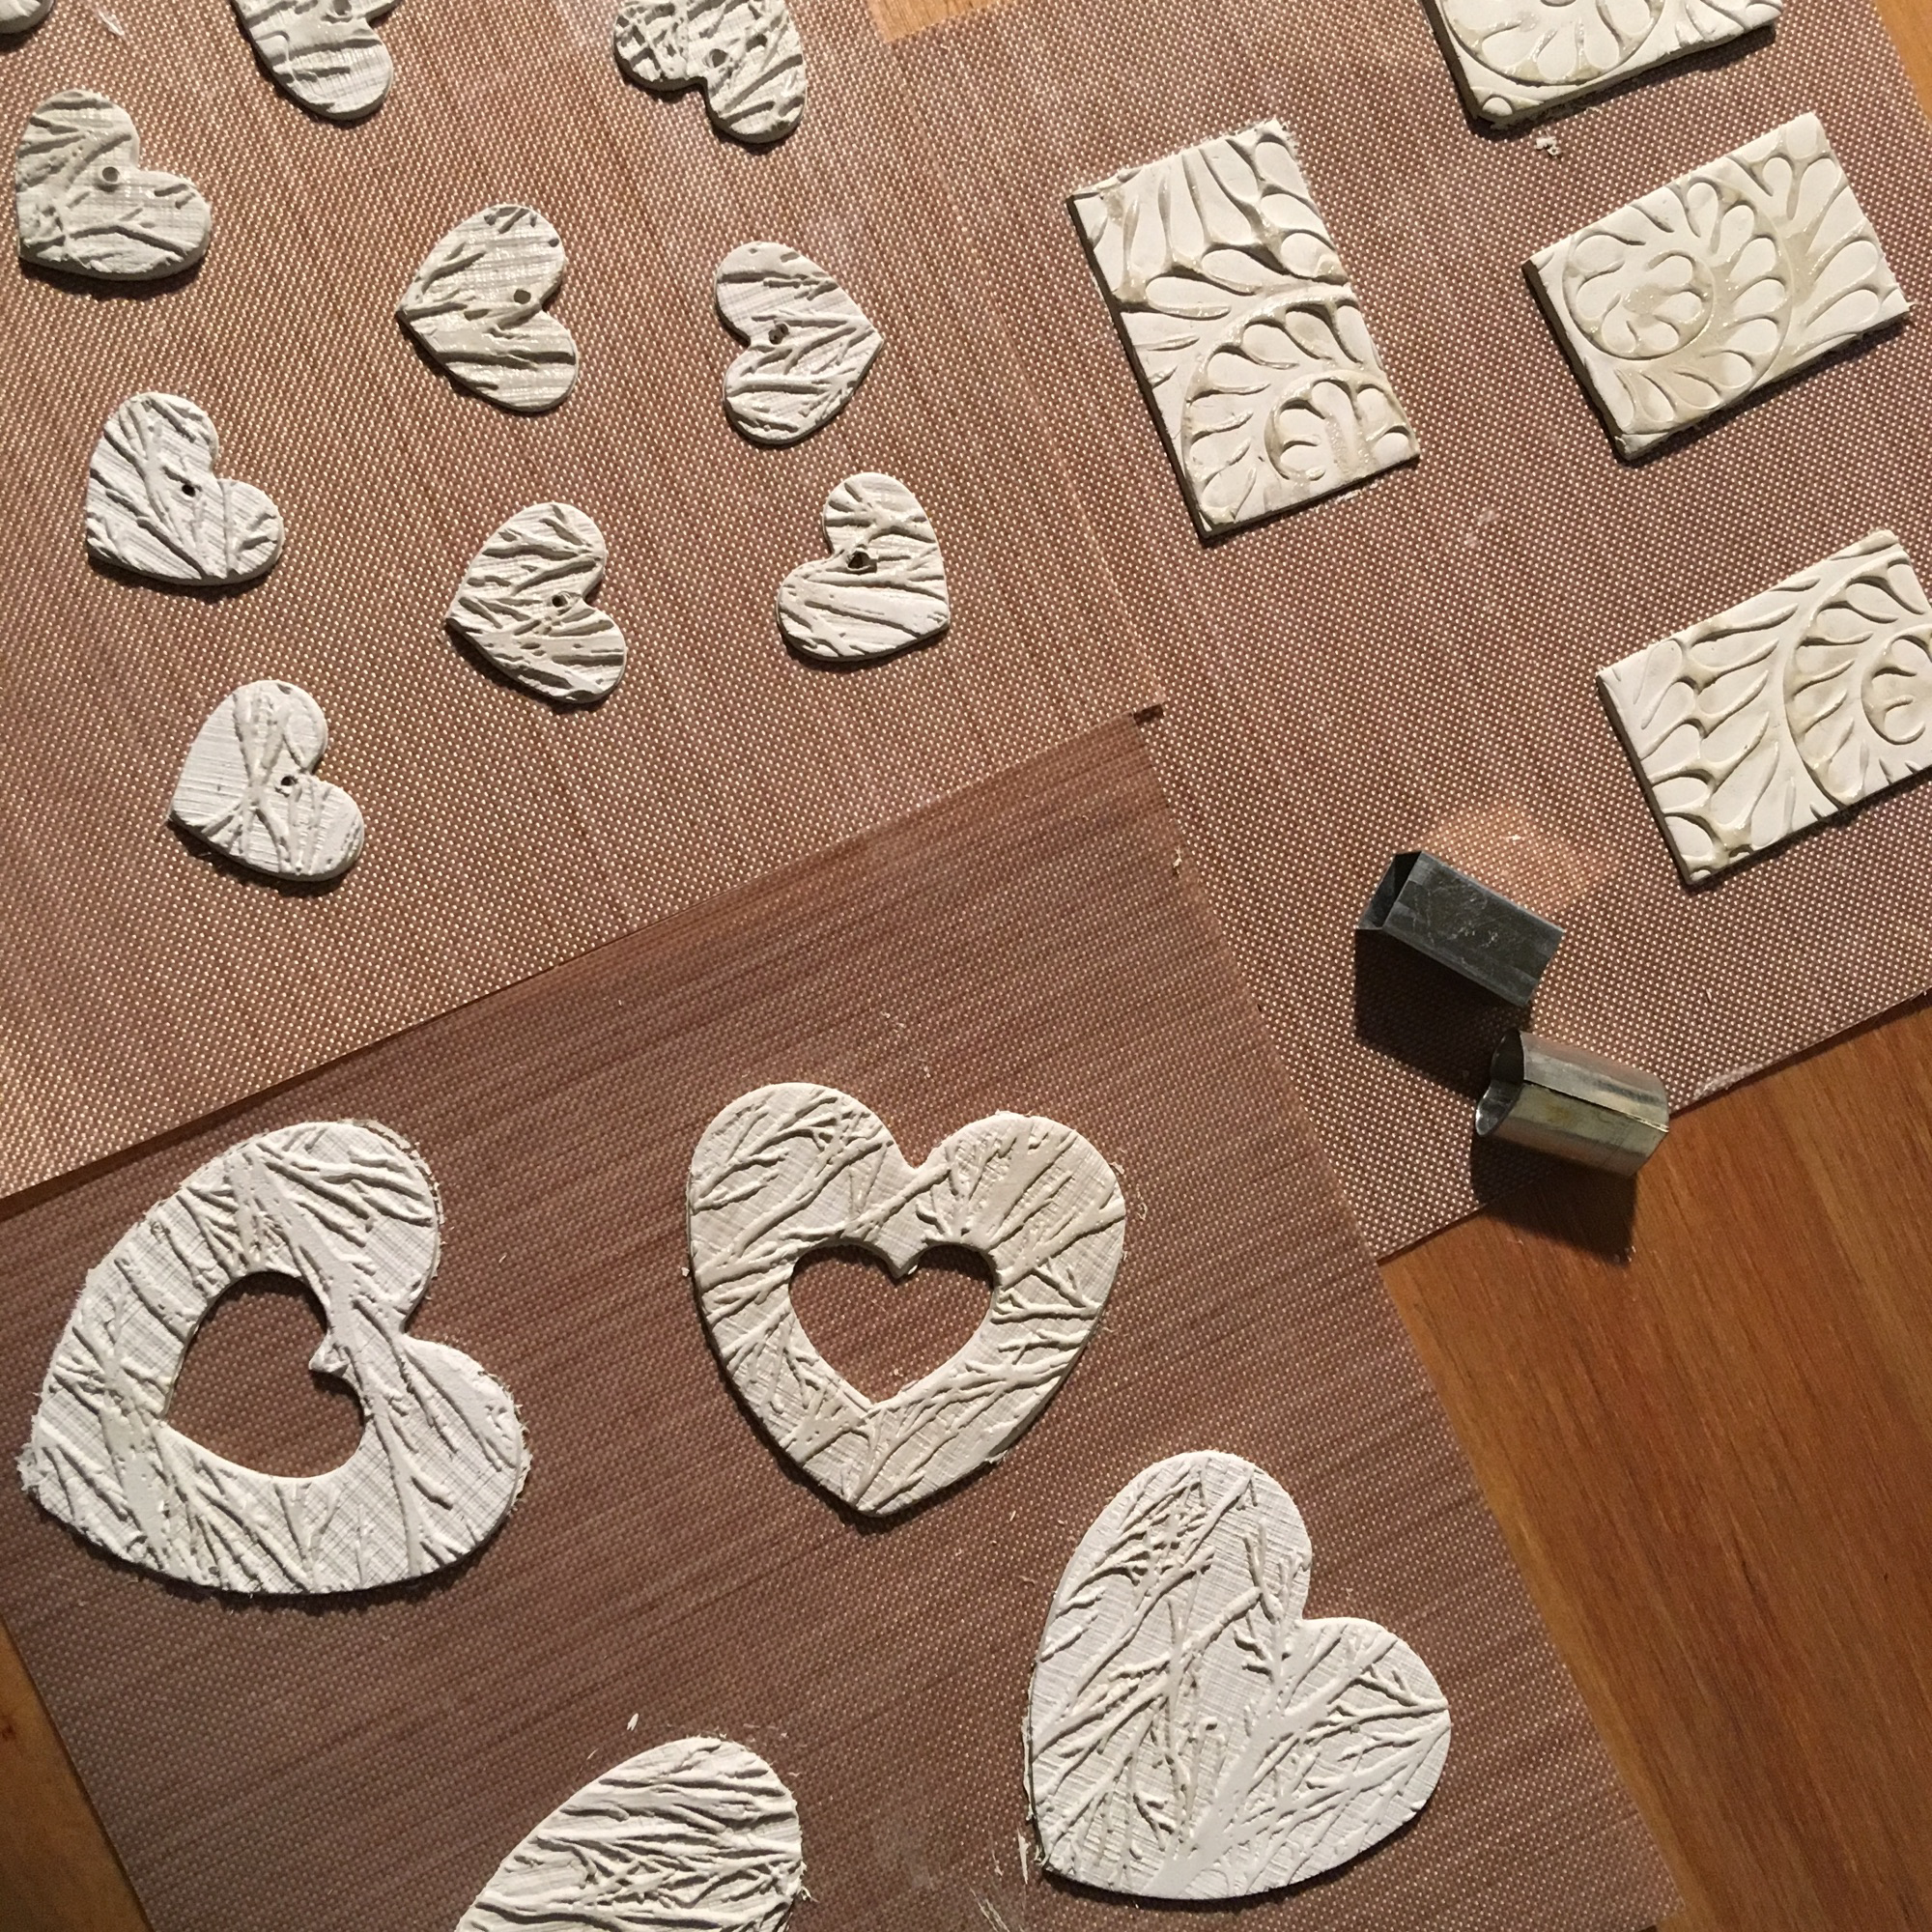 Shaping the silver clay